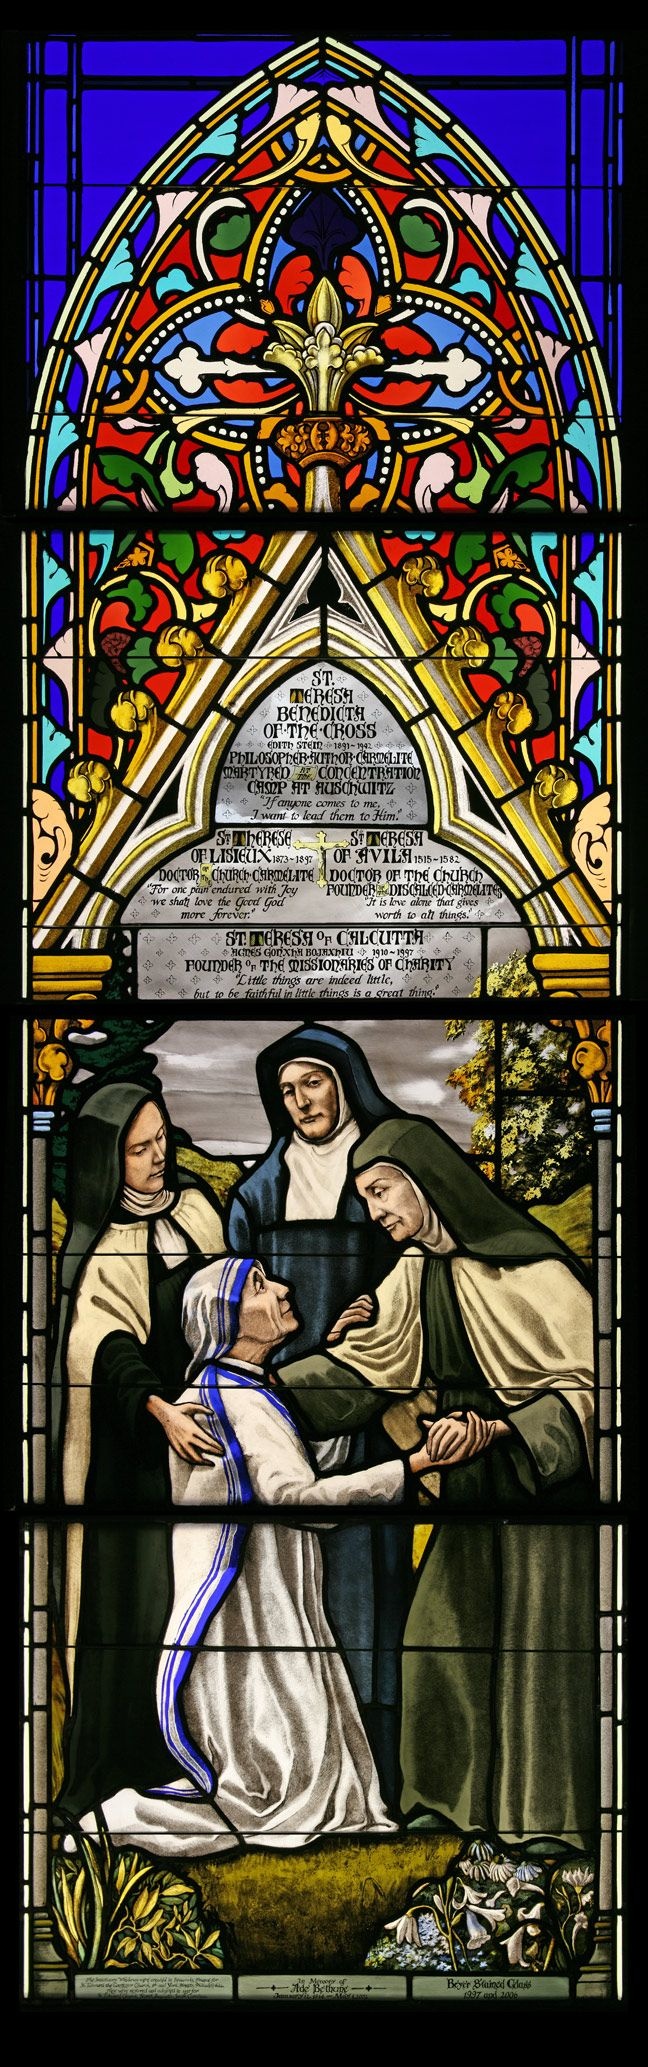 St. Therese Lisieux, St. Teresa of Avila, and St. Teresa Benedicta of the Cross (Edith Stein) welcoming St. Teresa of Calcutta. <3